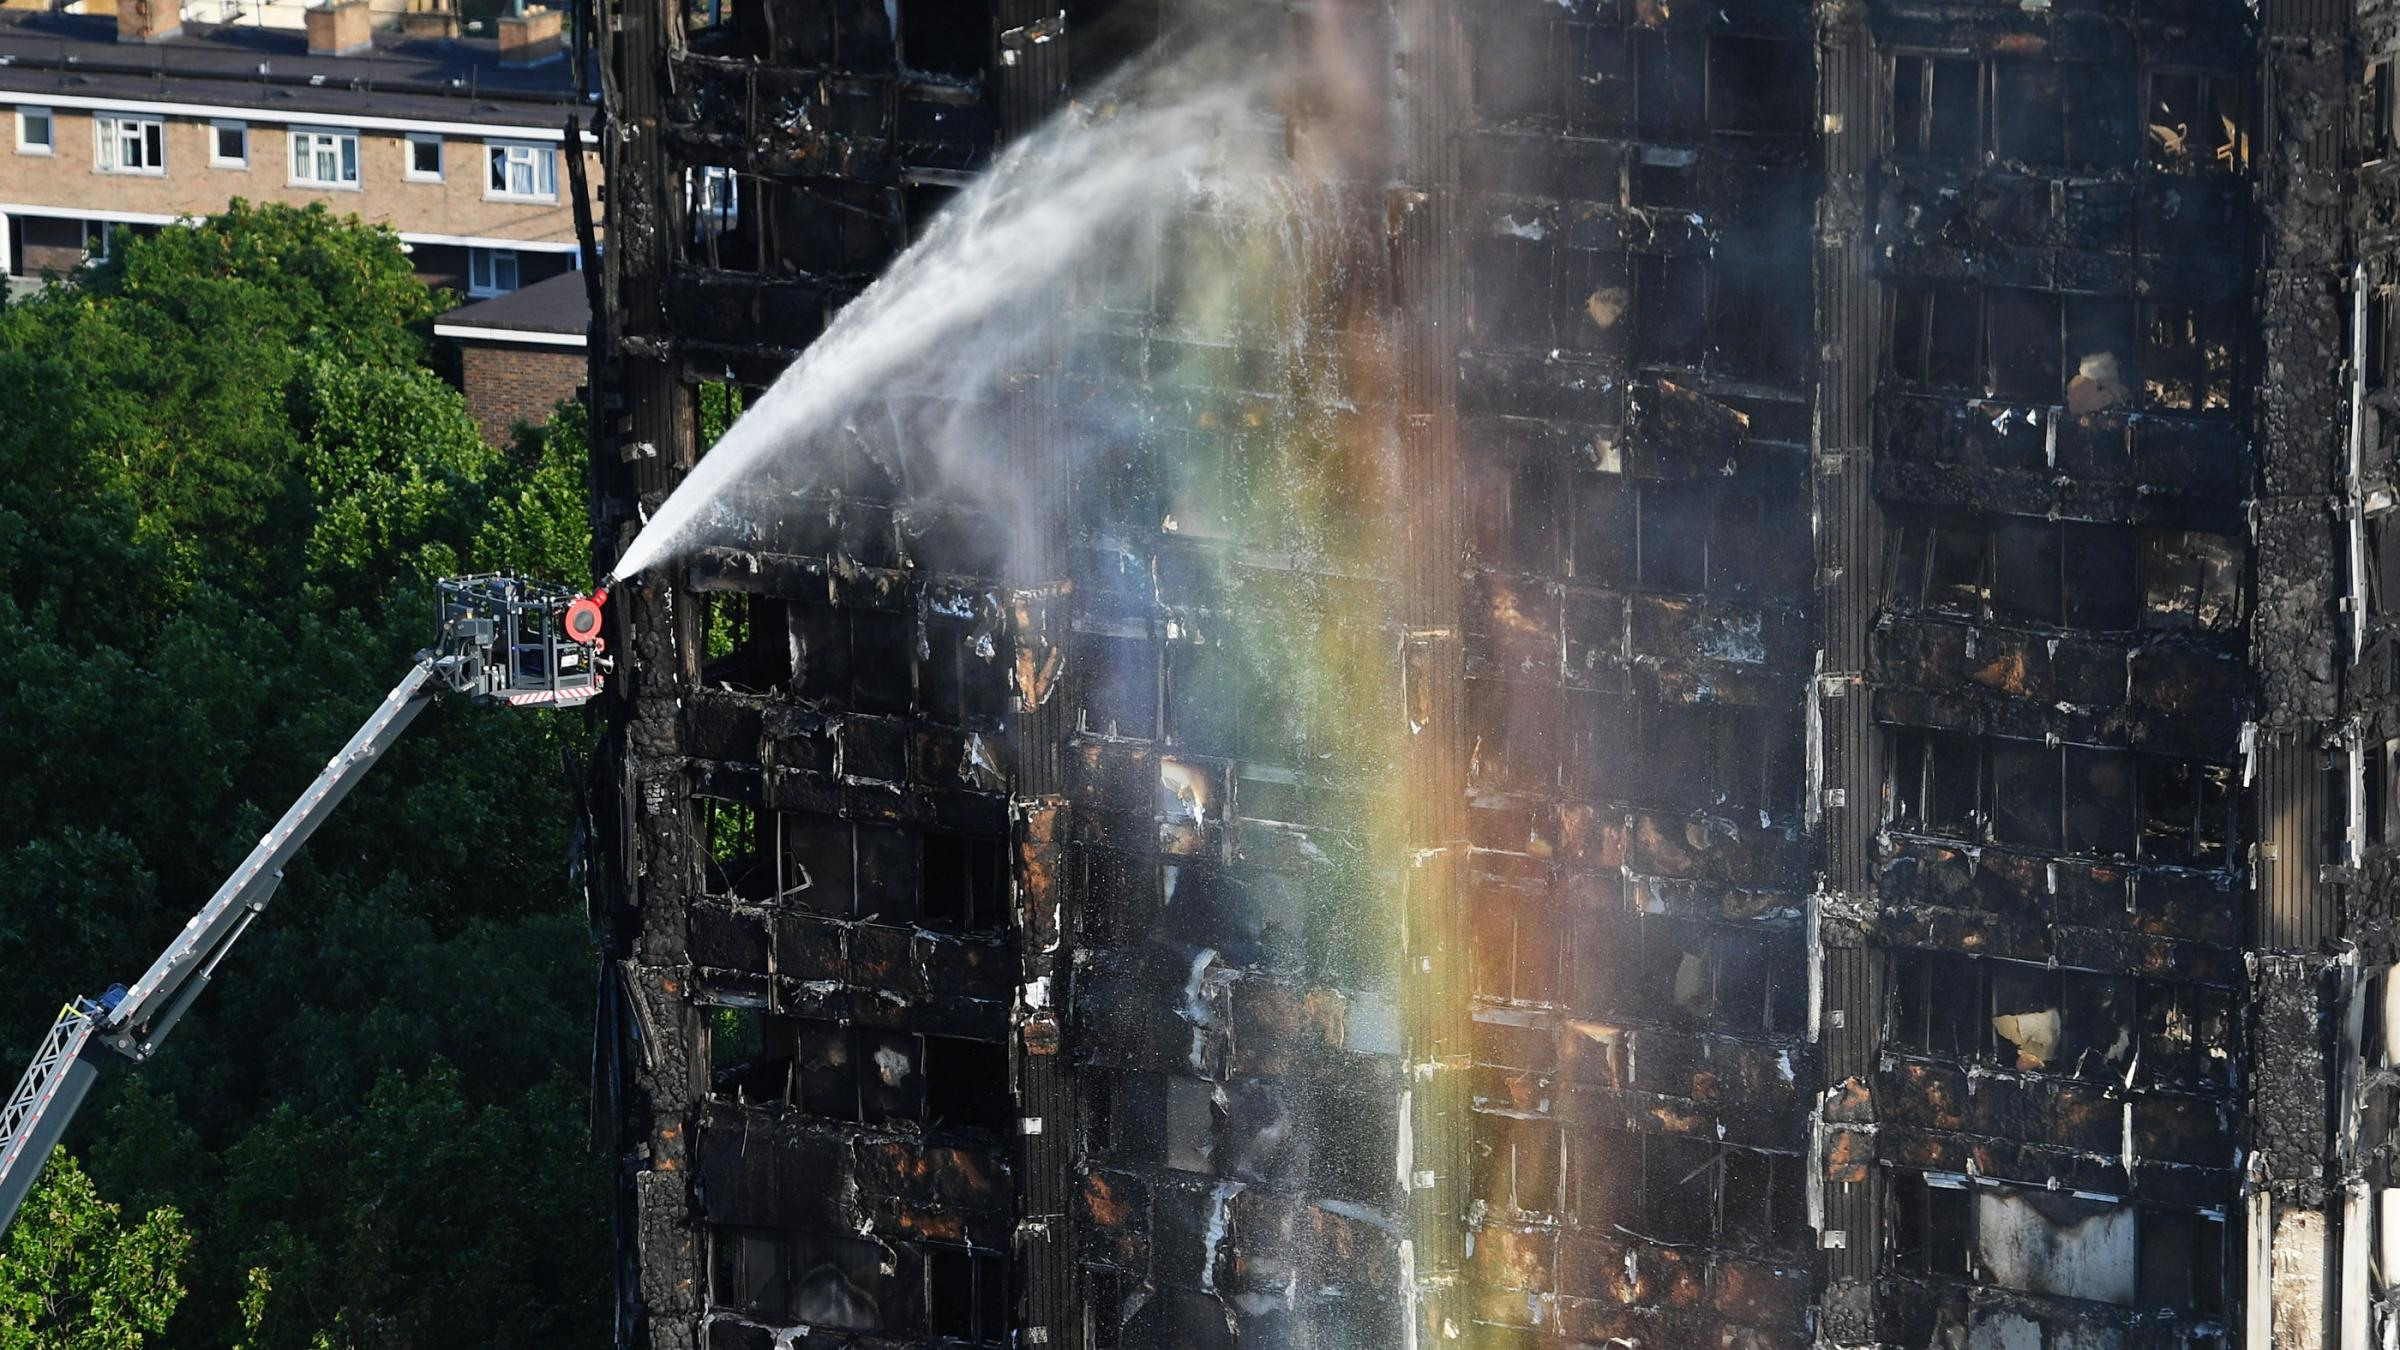 Bodies remain in London tower: fire chief